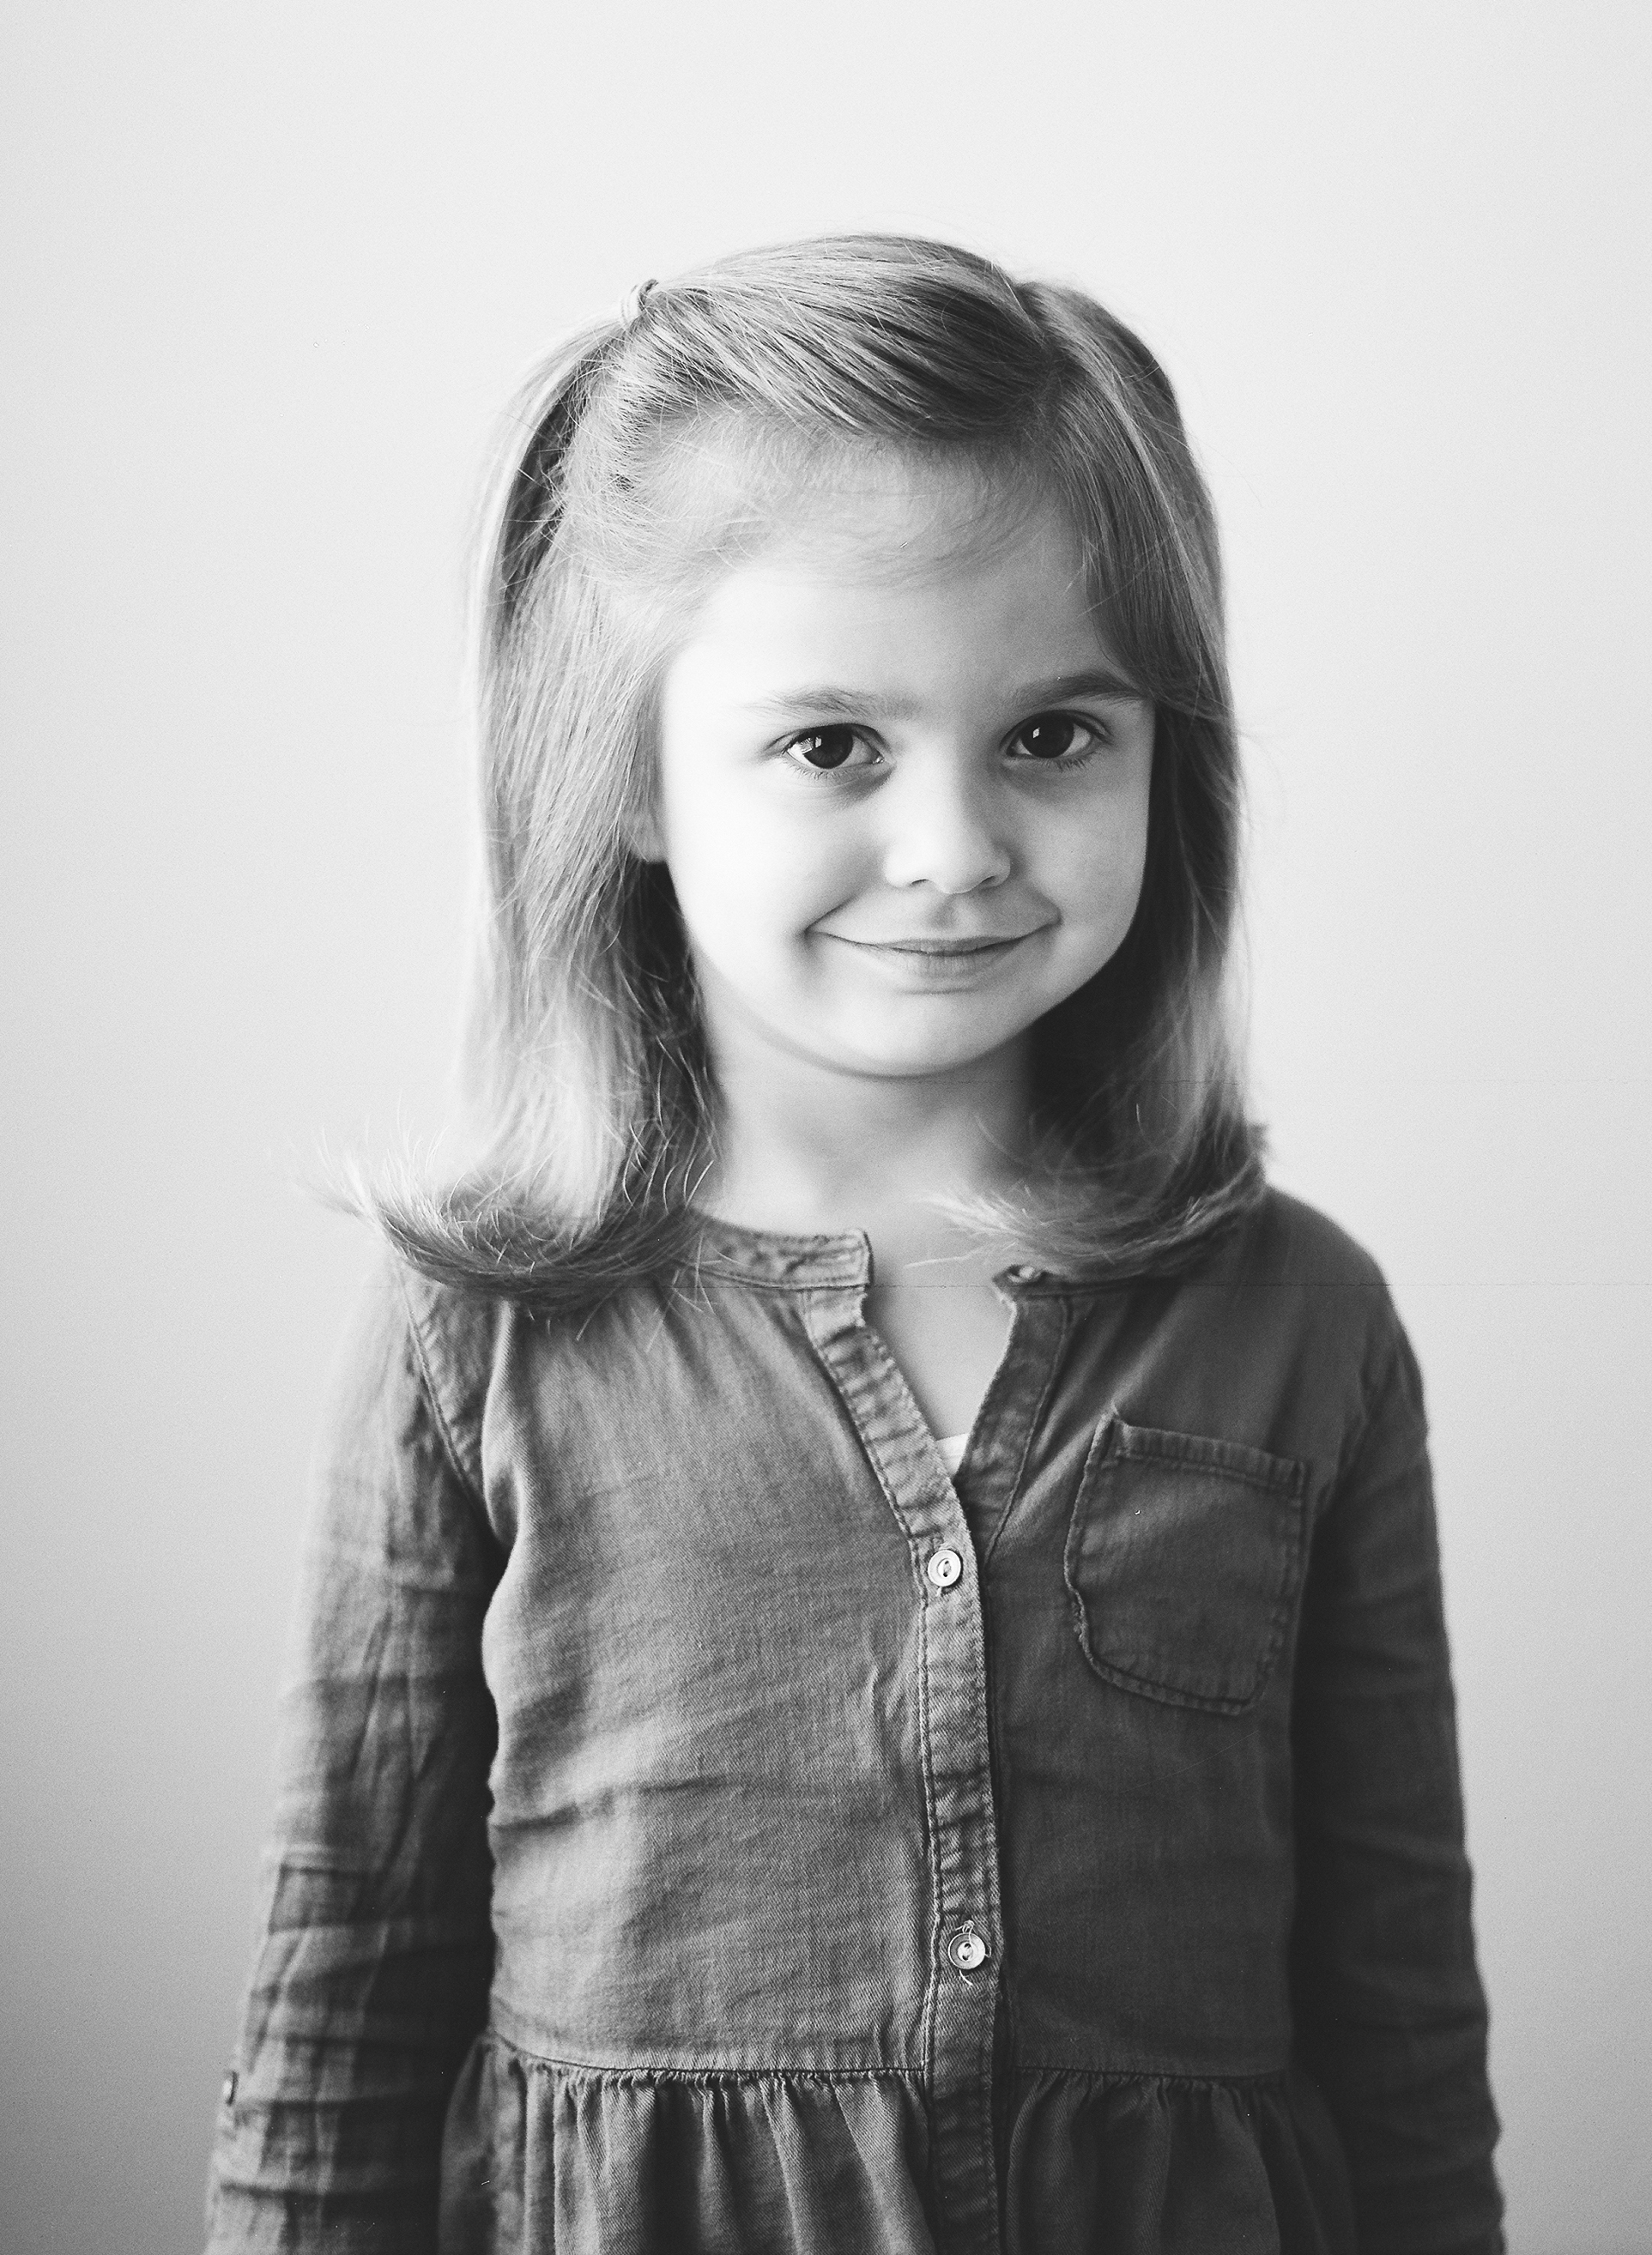 nashville-franklin-blackandwhite-childrens-portraiture-24.JPG